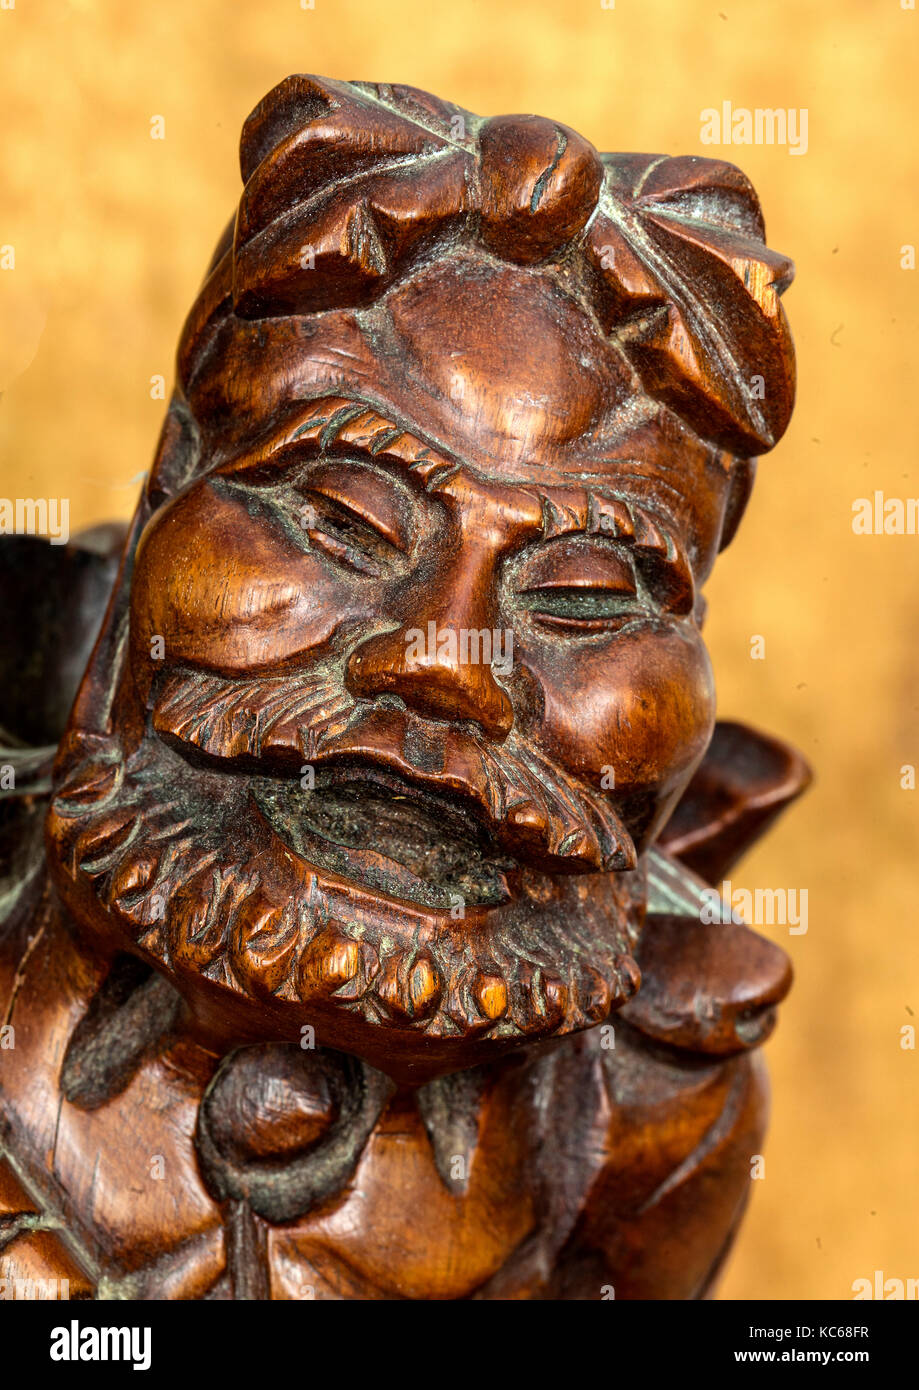 Antique statue of old Chinese man with eyes shut - Stock Image